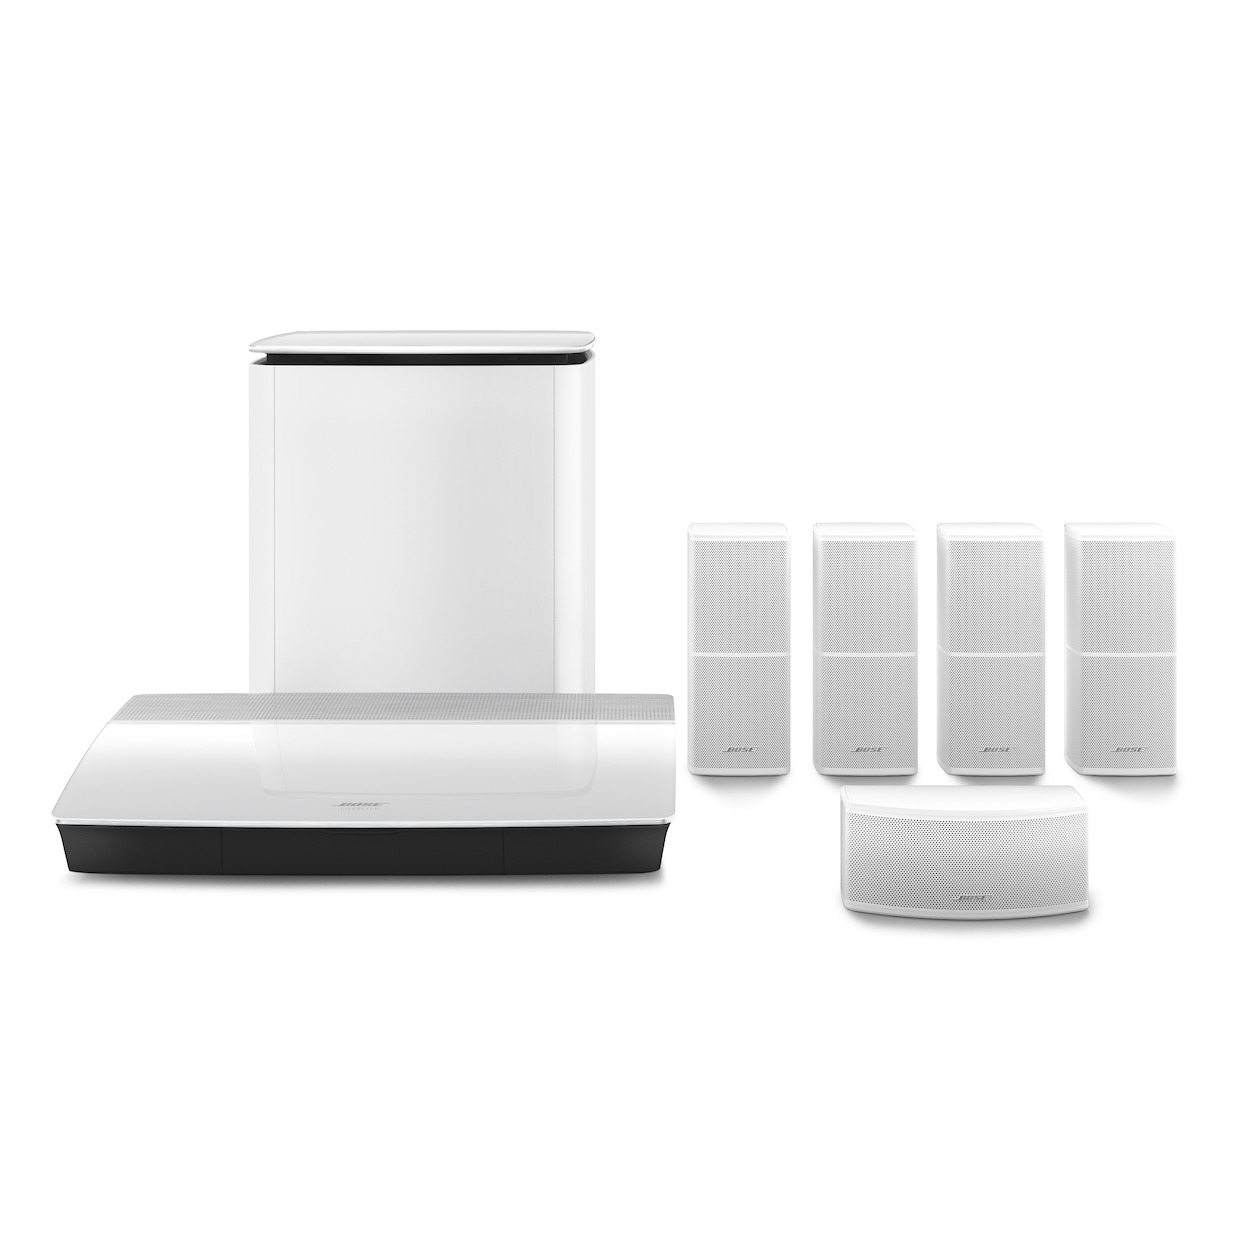 Bose 5.1 systeem Lifestyle 600 wit